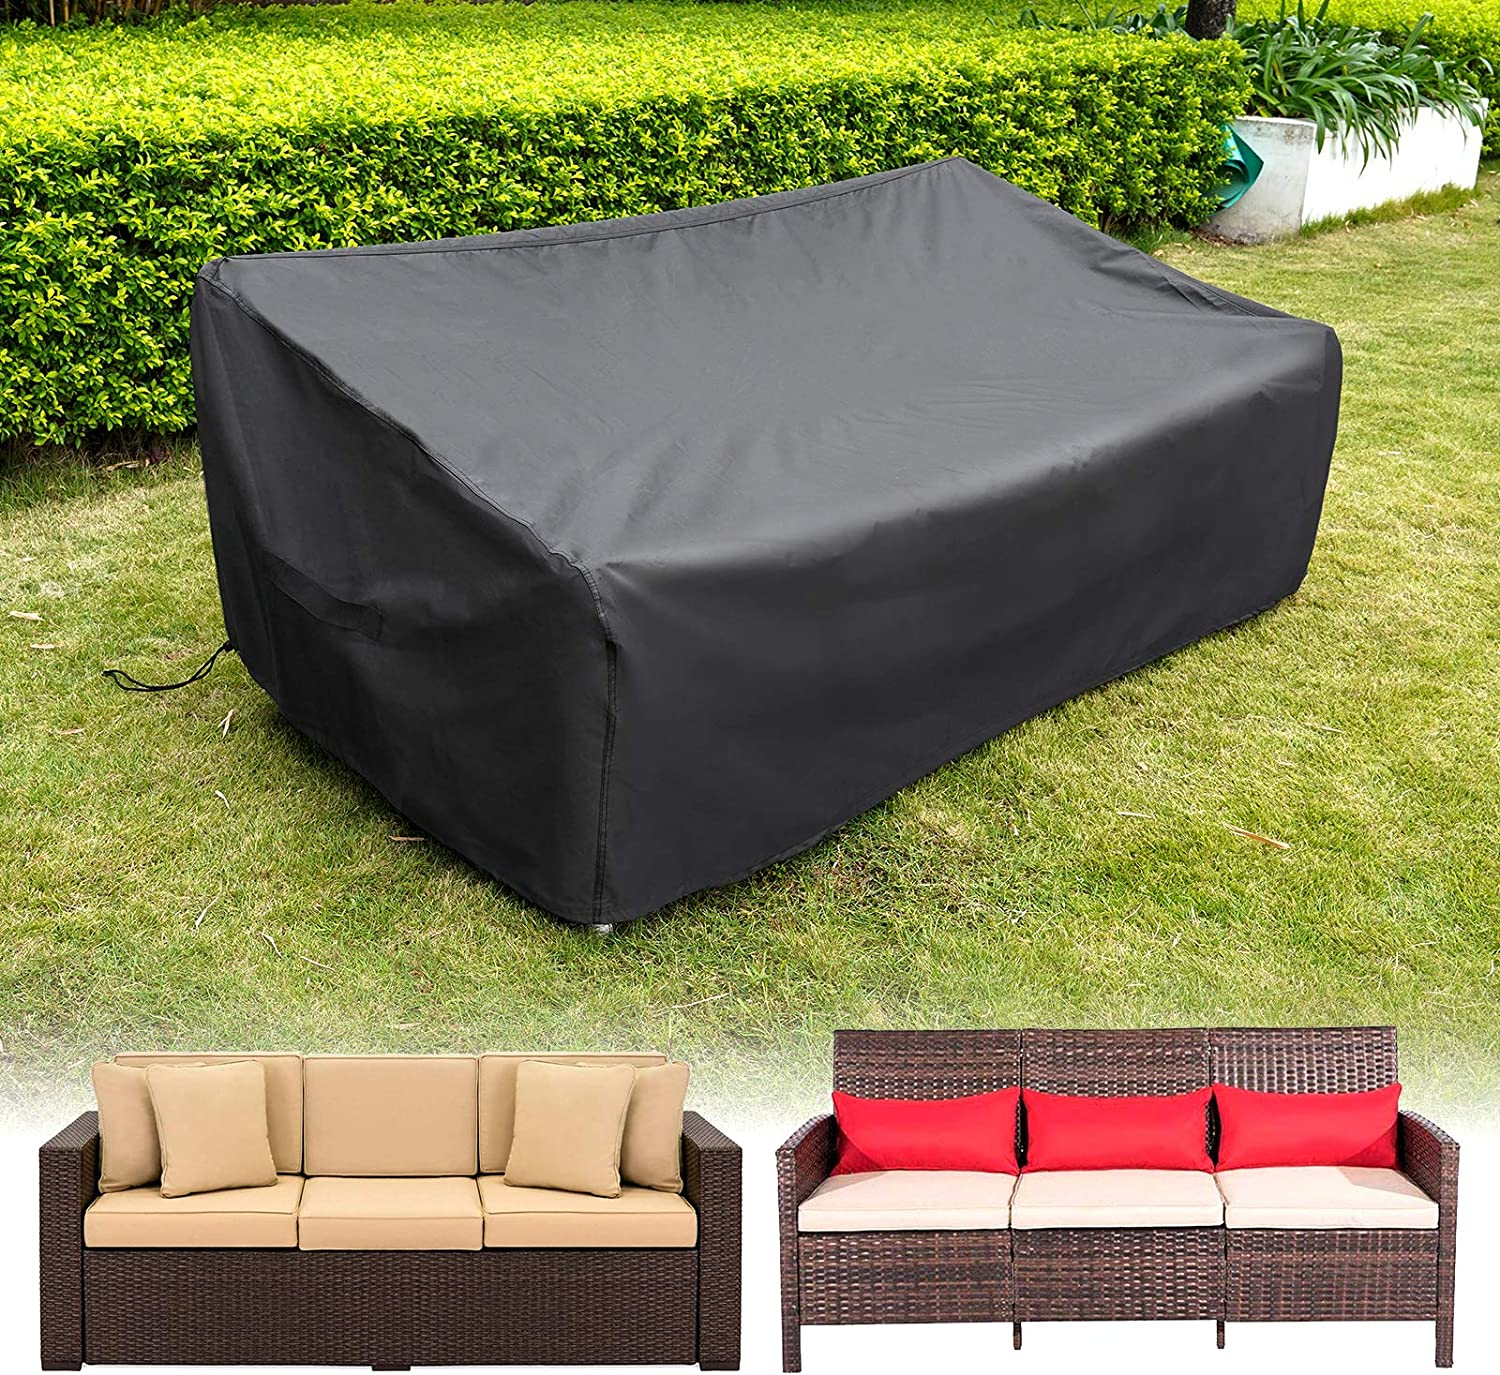 "HIRALIY Patio Loveseat Covers Waterproof 3 Seaters Patio Sofa Cover Lounge Deep Seat Chairs Cover Heavy Duty Patio Furniture Covers for Outdoor Bench (82.6"" L x 39"" W x 27.5"" H)"